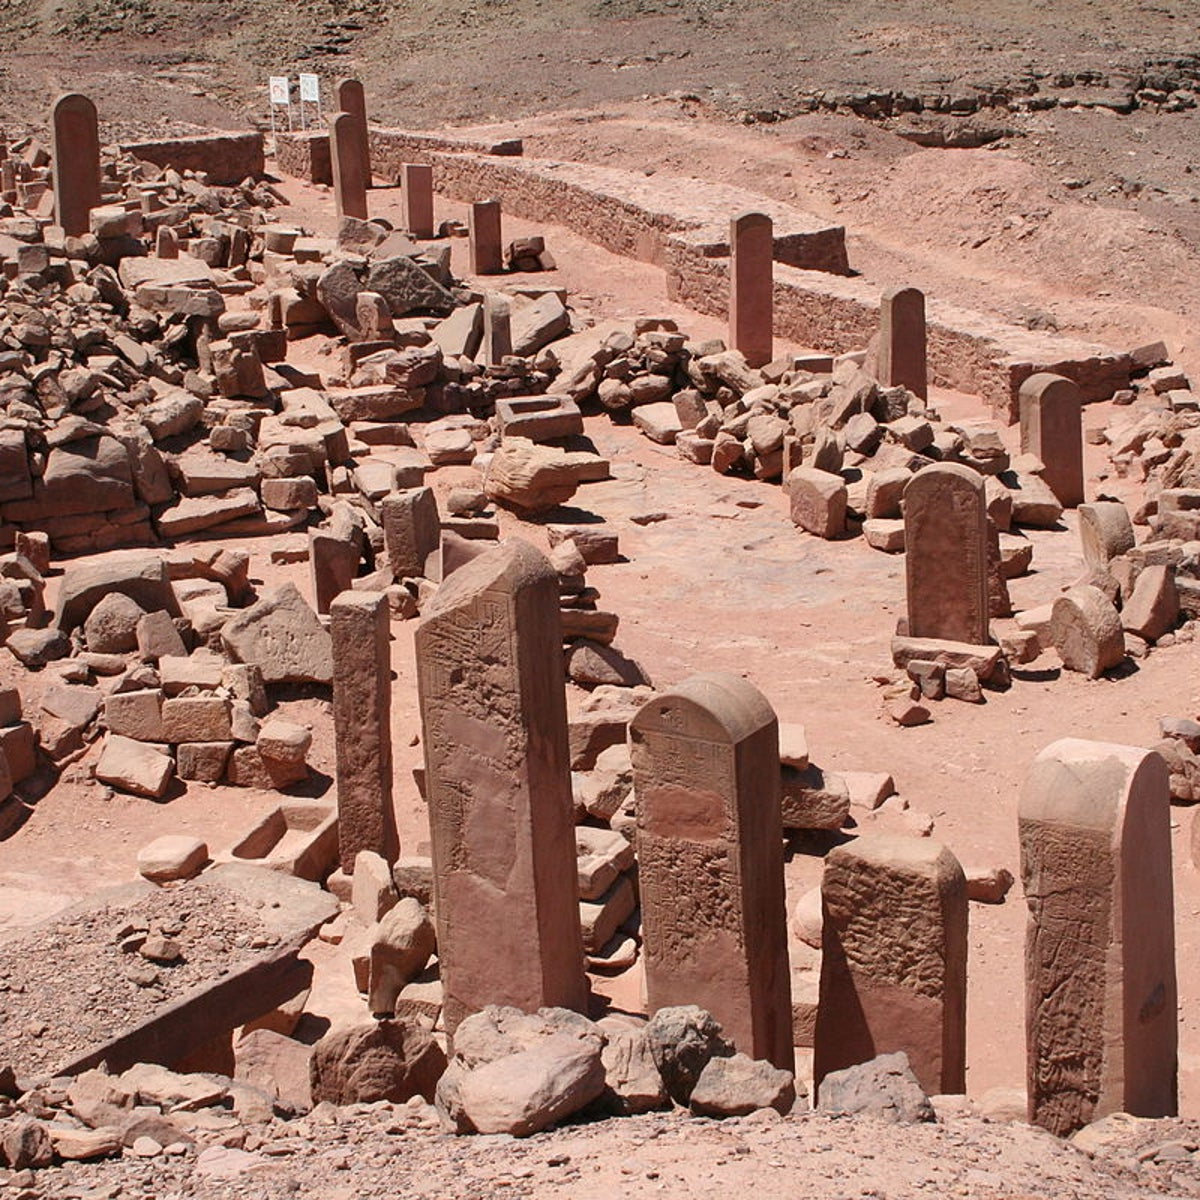 The remains of the giant temple to Hathor built at Serabit el-Khadem, in the Sinai. The picture shows rubble and standing stelae.